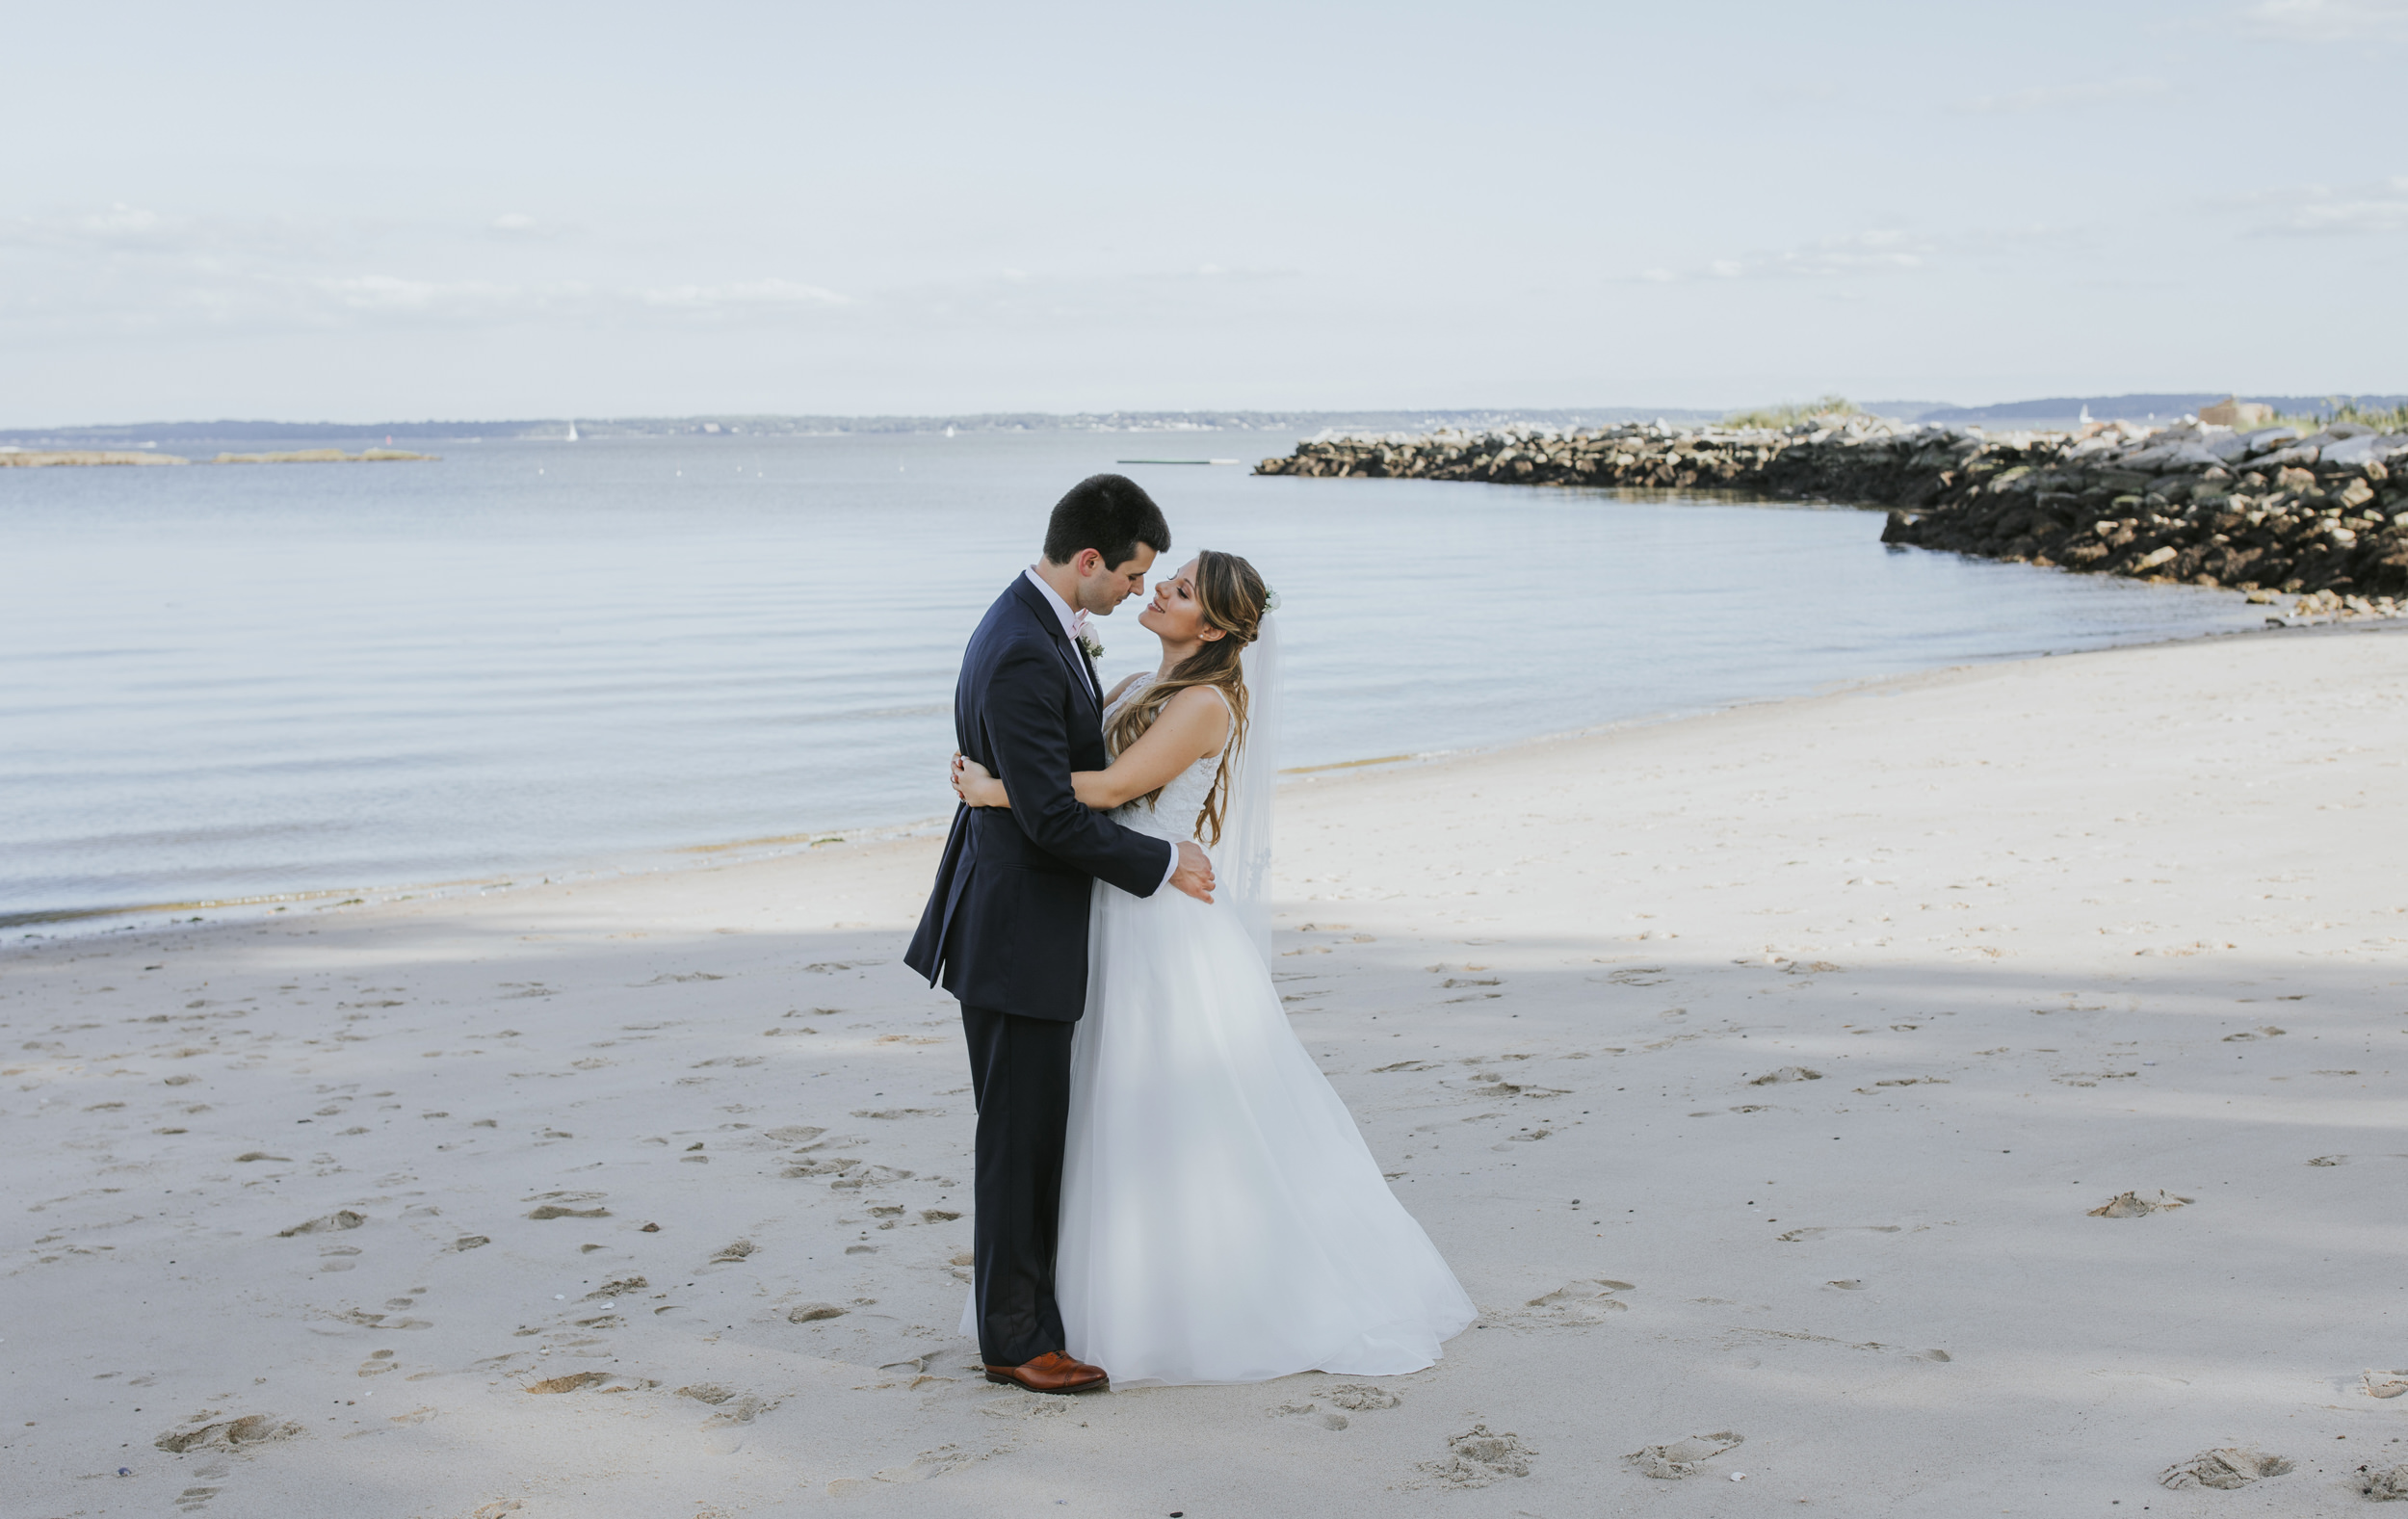 A couple at the beach on their wedding day